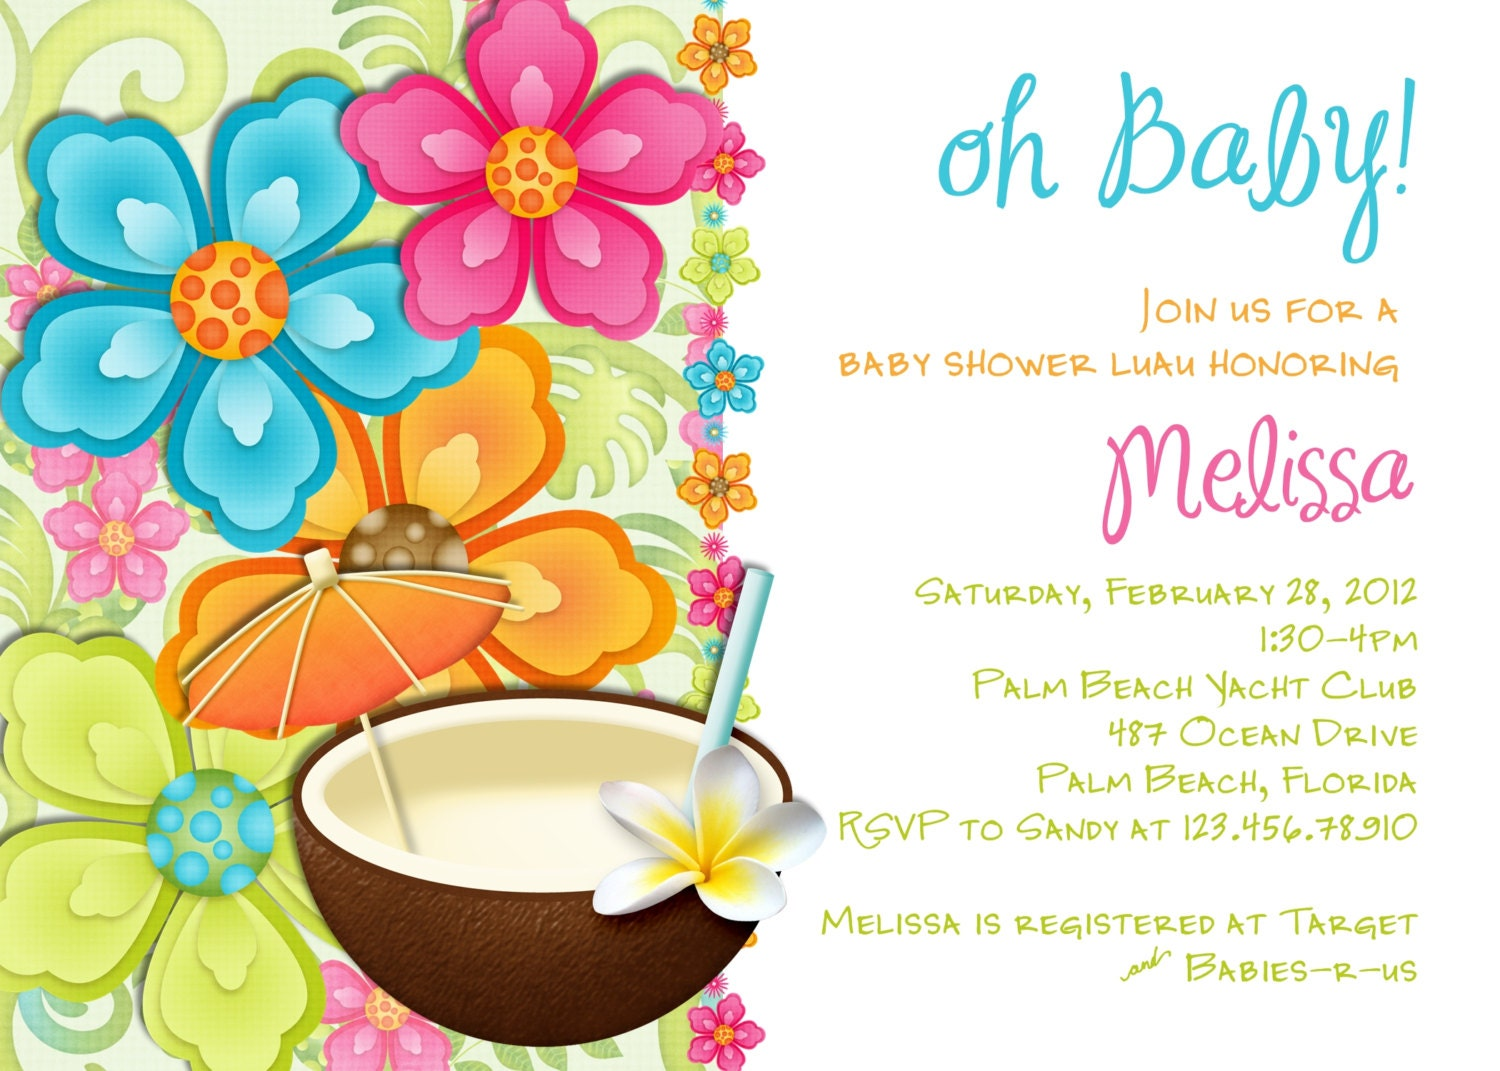 luau baby shower invitation tropical hawaiian hula party